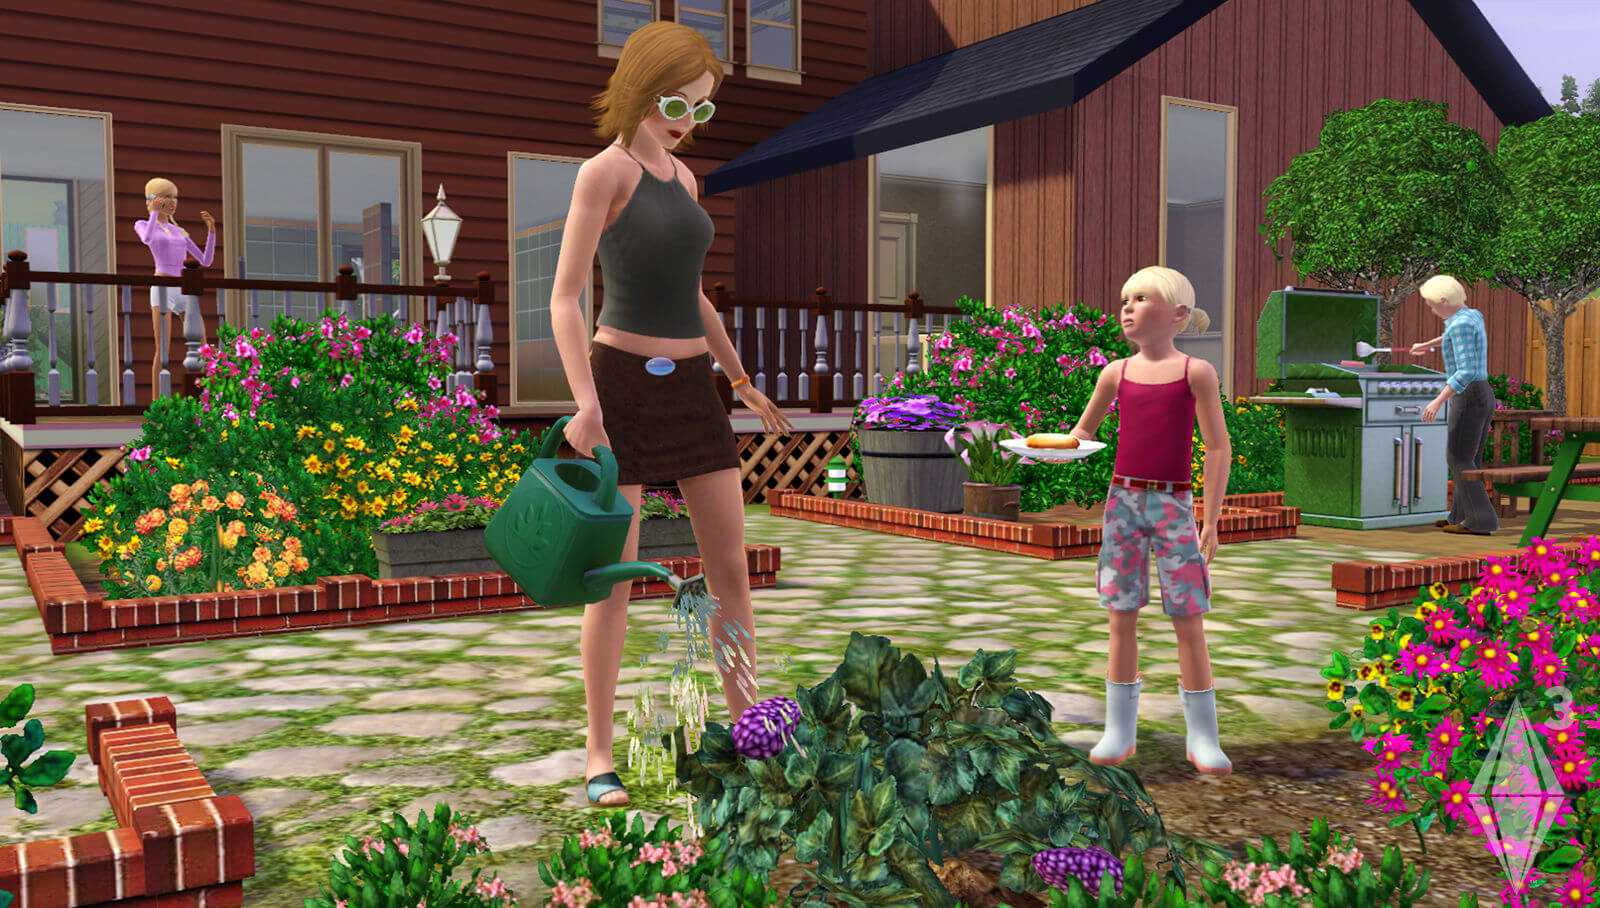 Download The Sims 4 PC